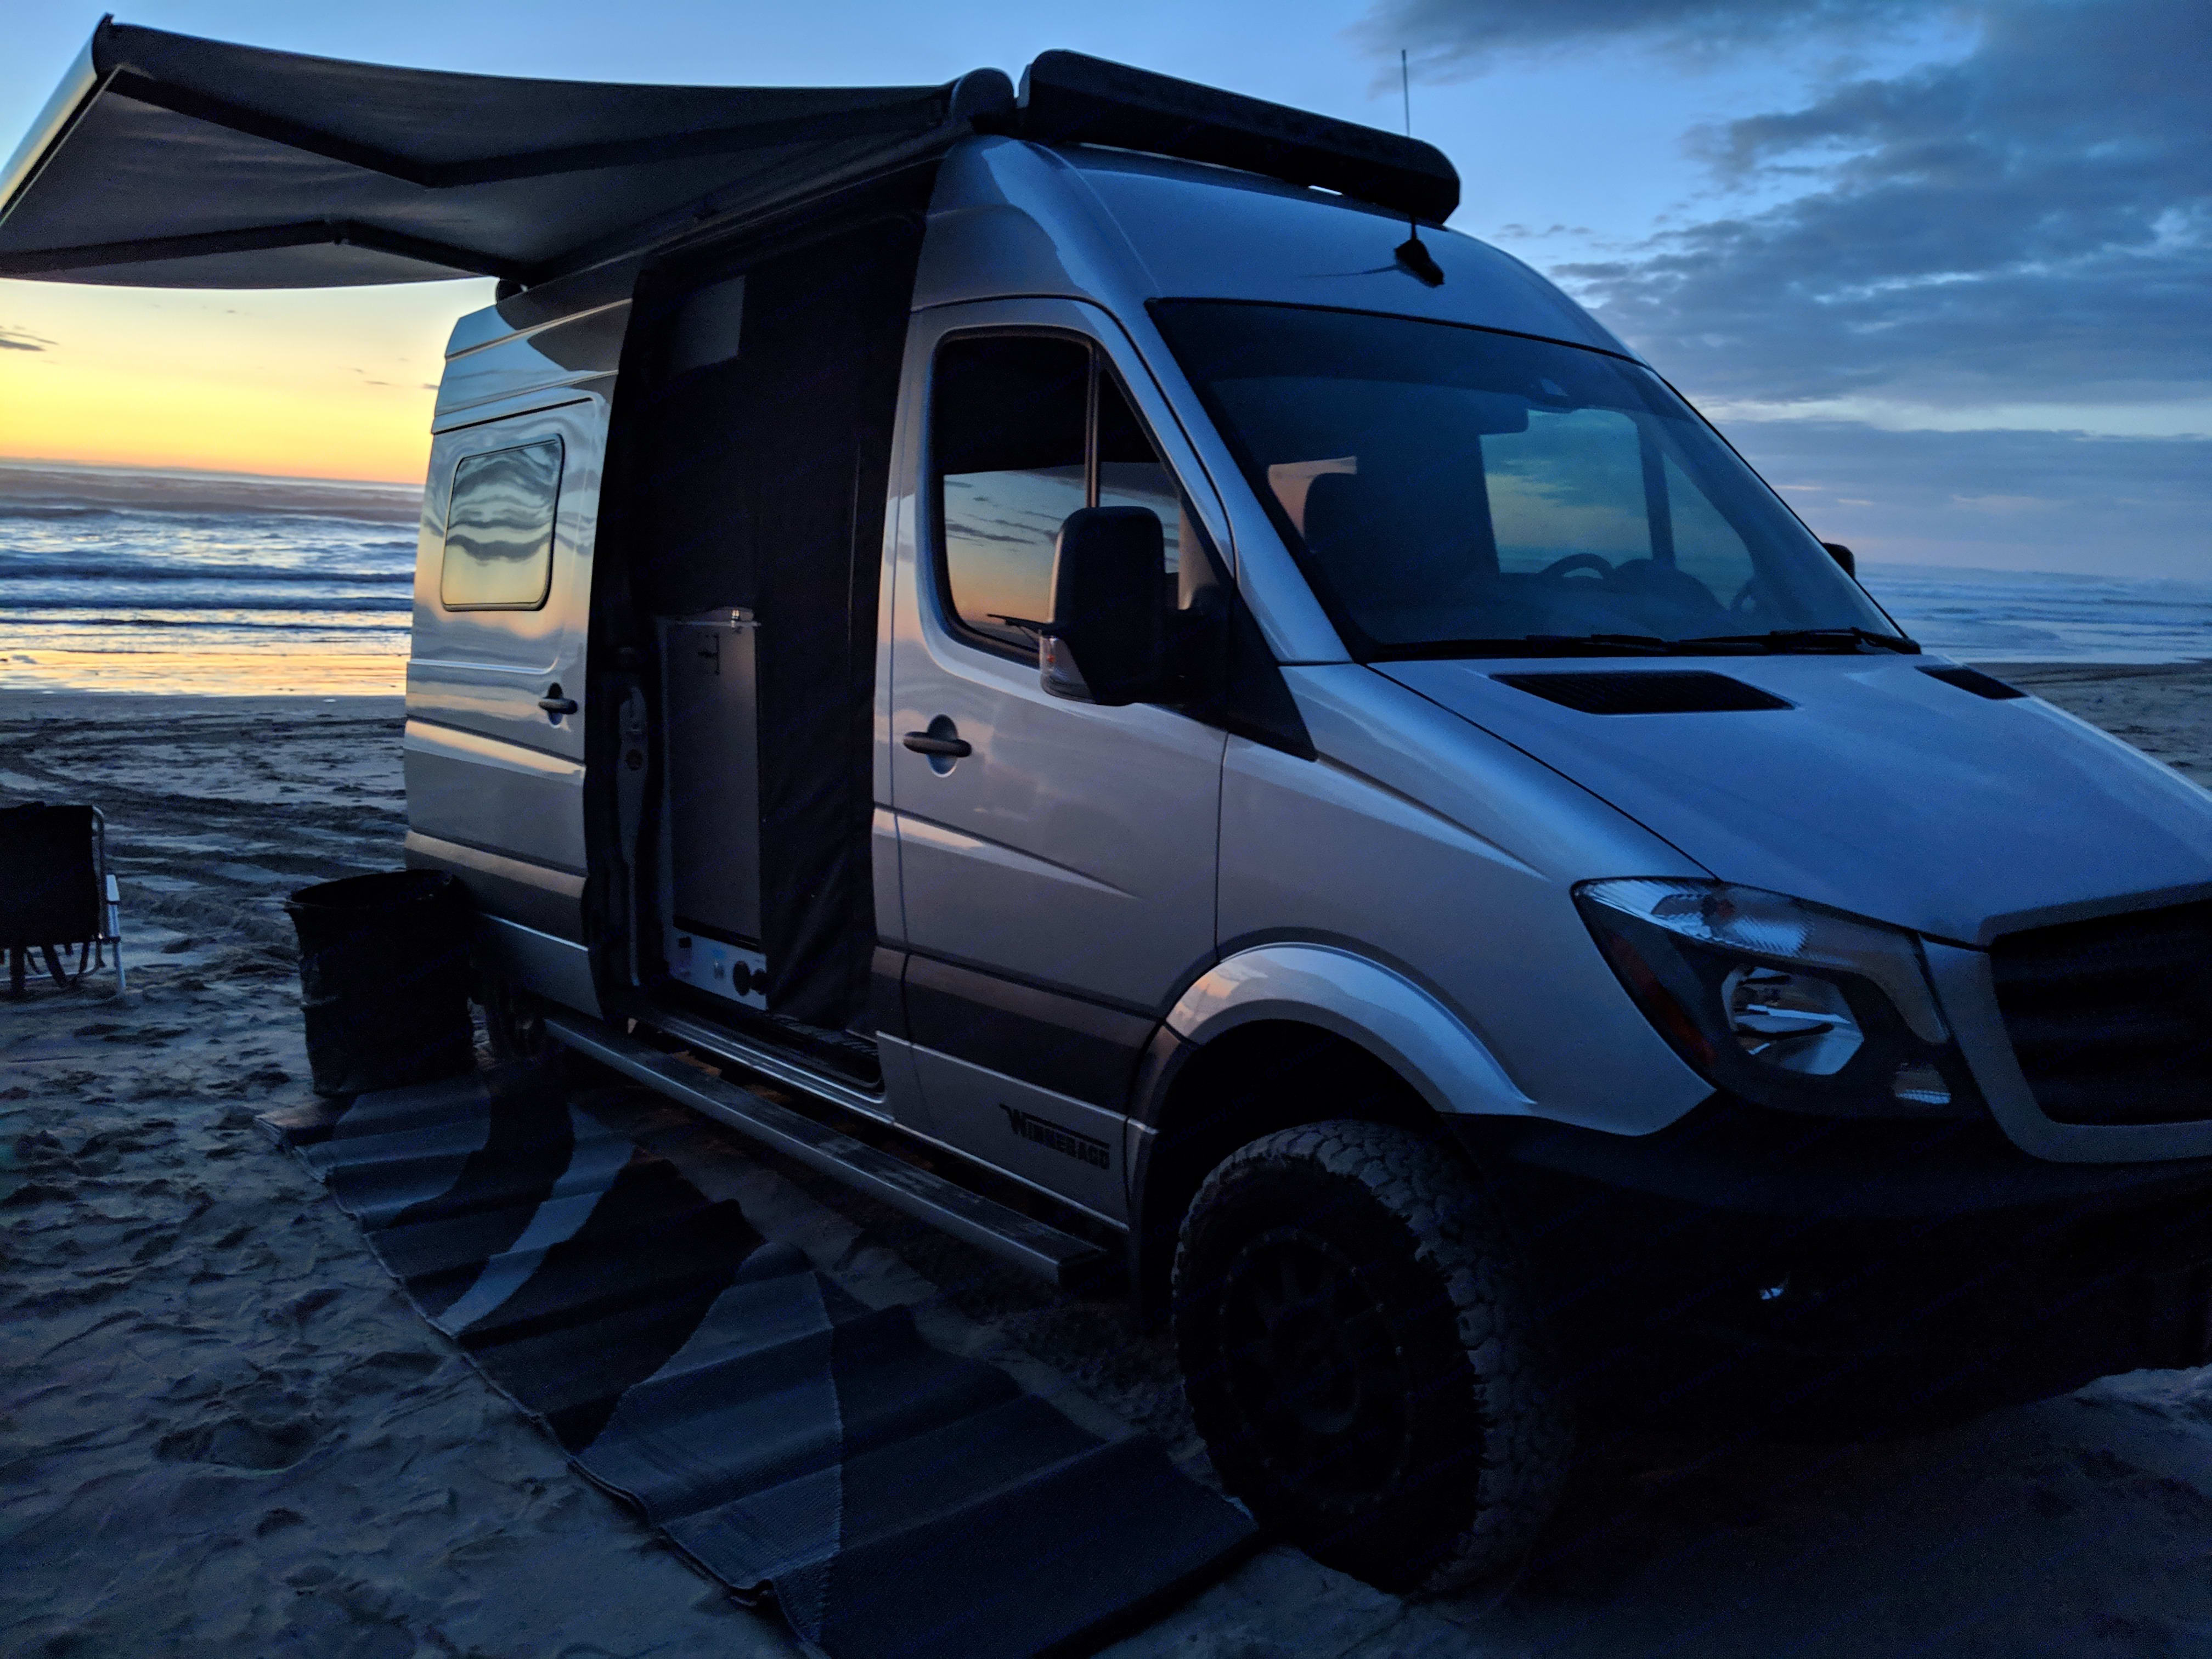 Large awning, fold down outdoor table by the slide door (not shown). Mercedes-Benz Sprinter Winnebago Revel 2019